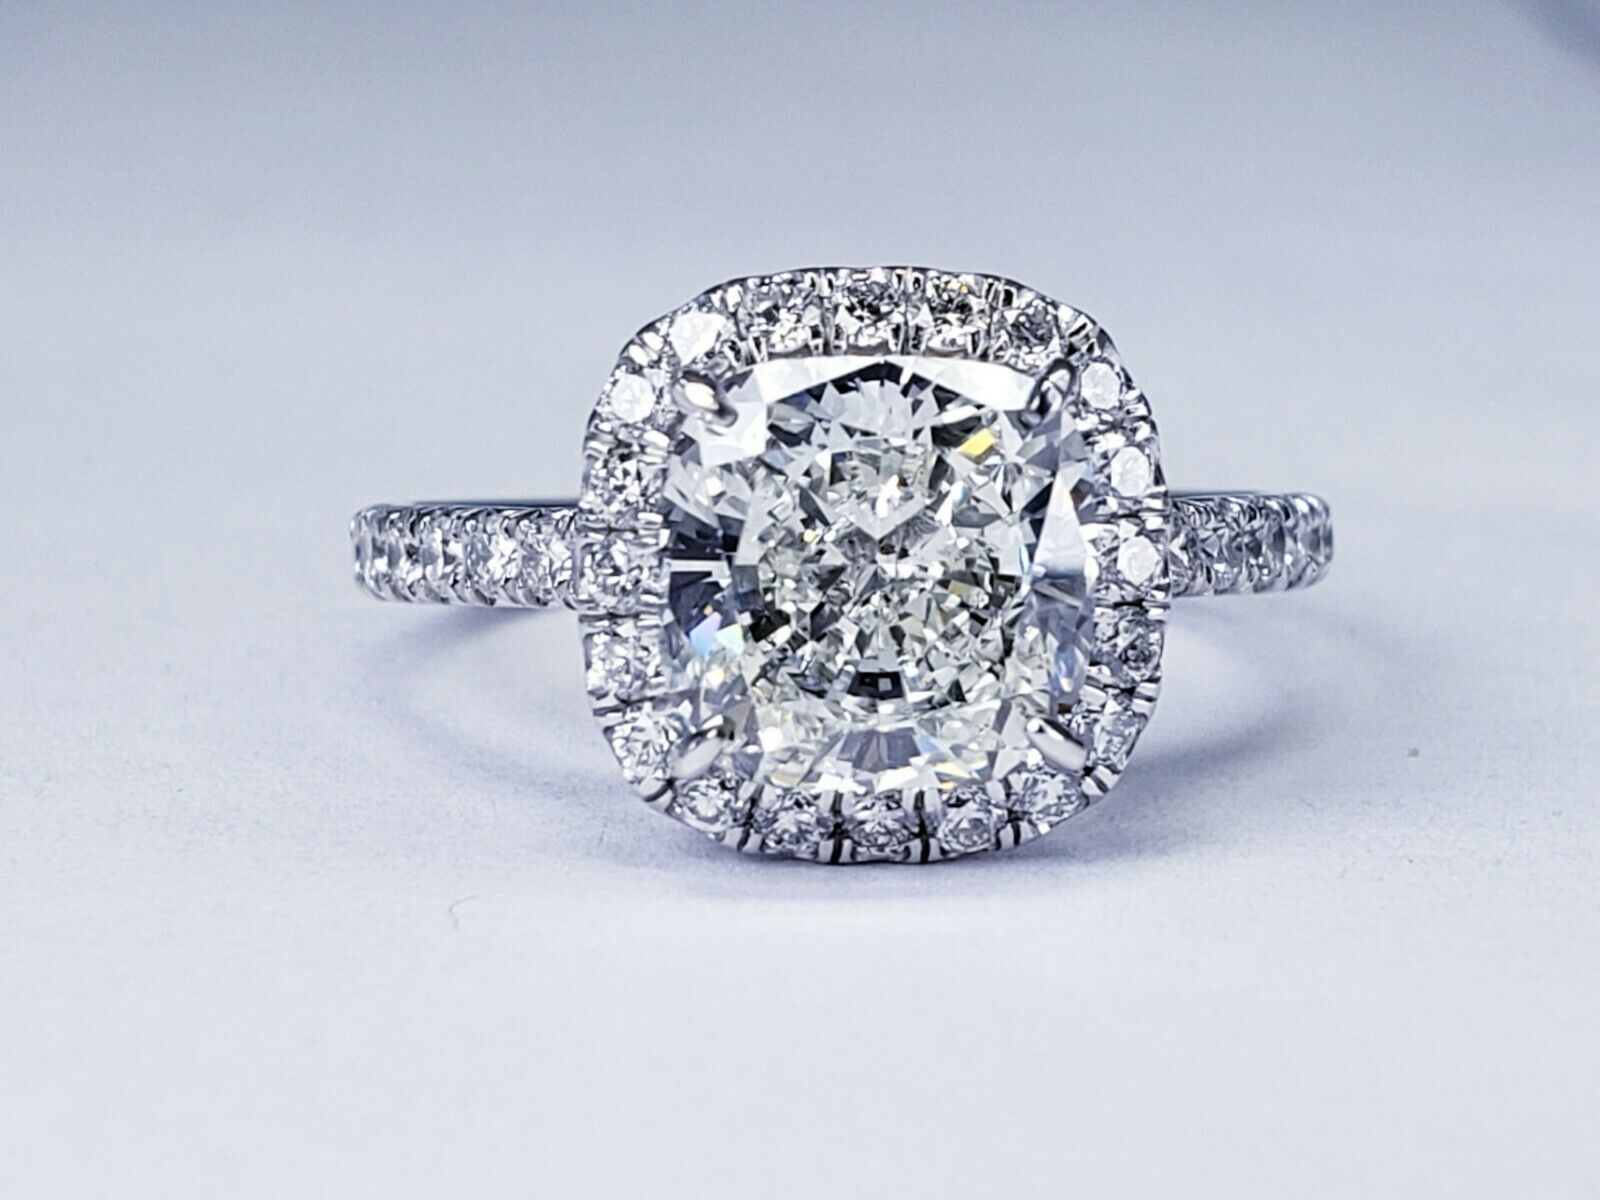 2.26ct GIA Certified Diamond Engagement Ring Halo Design Cushion Cut I Color Si1